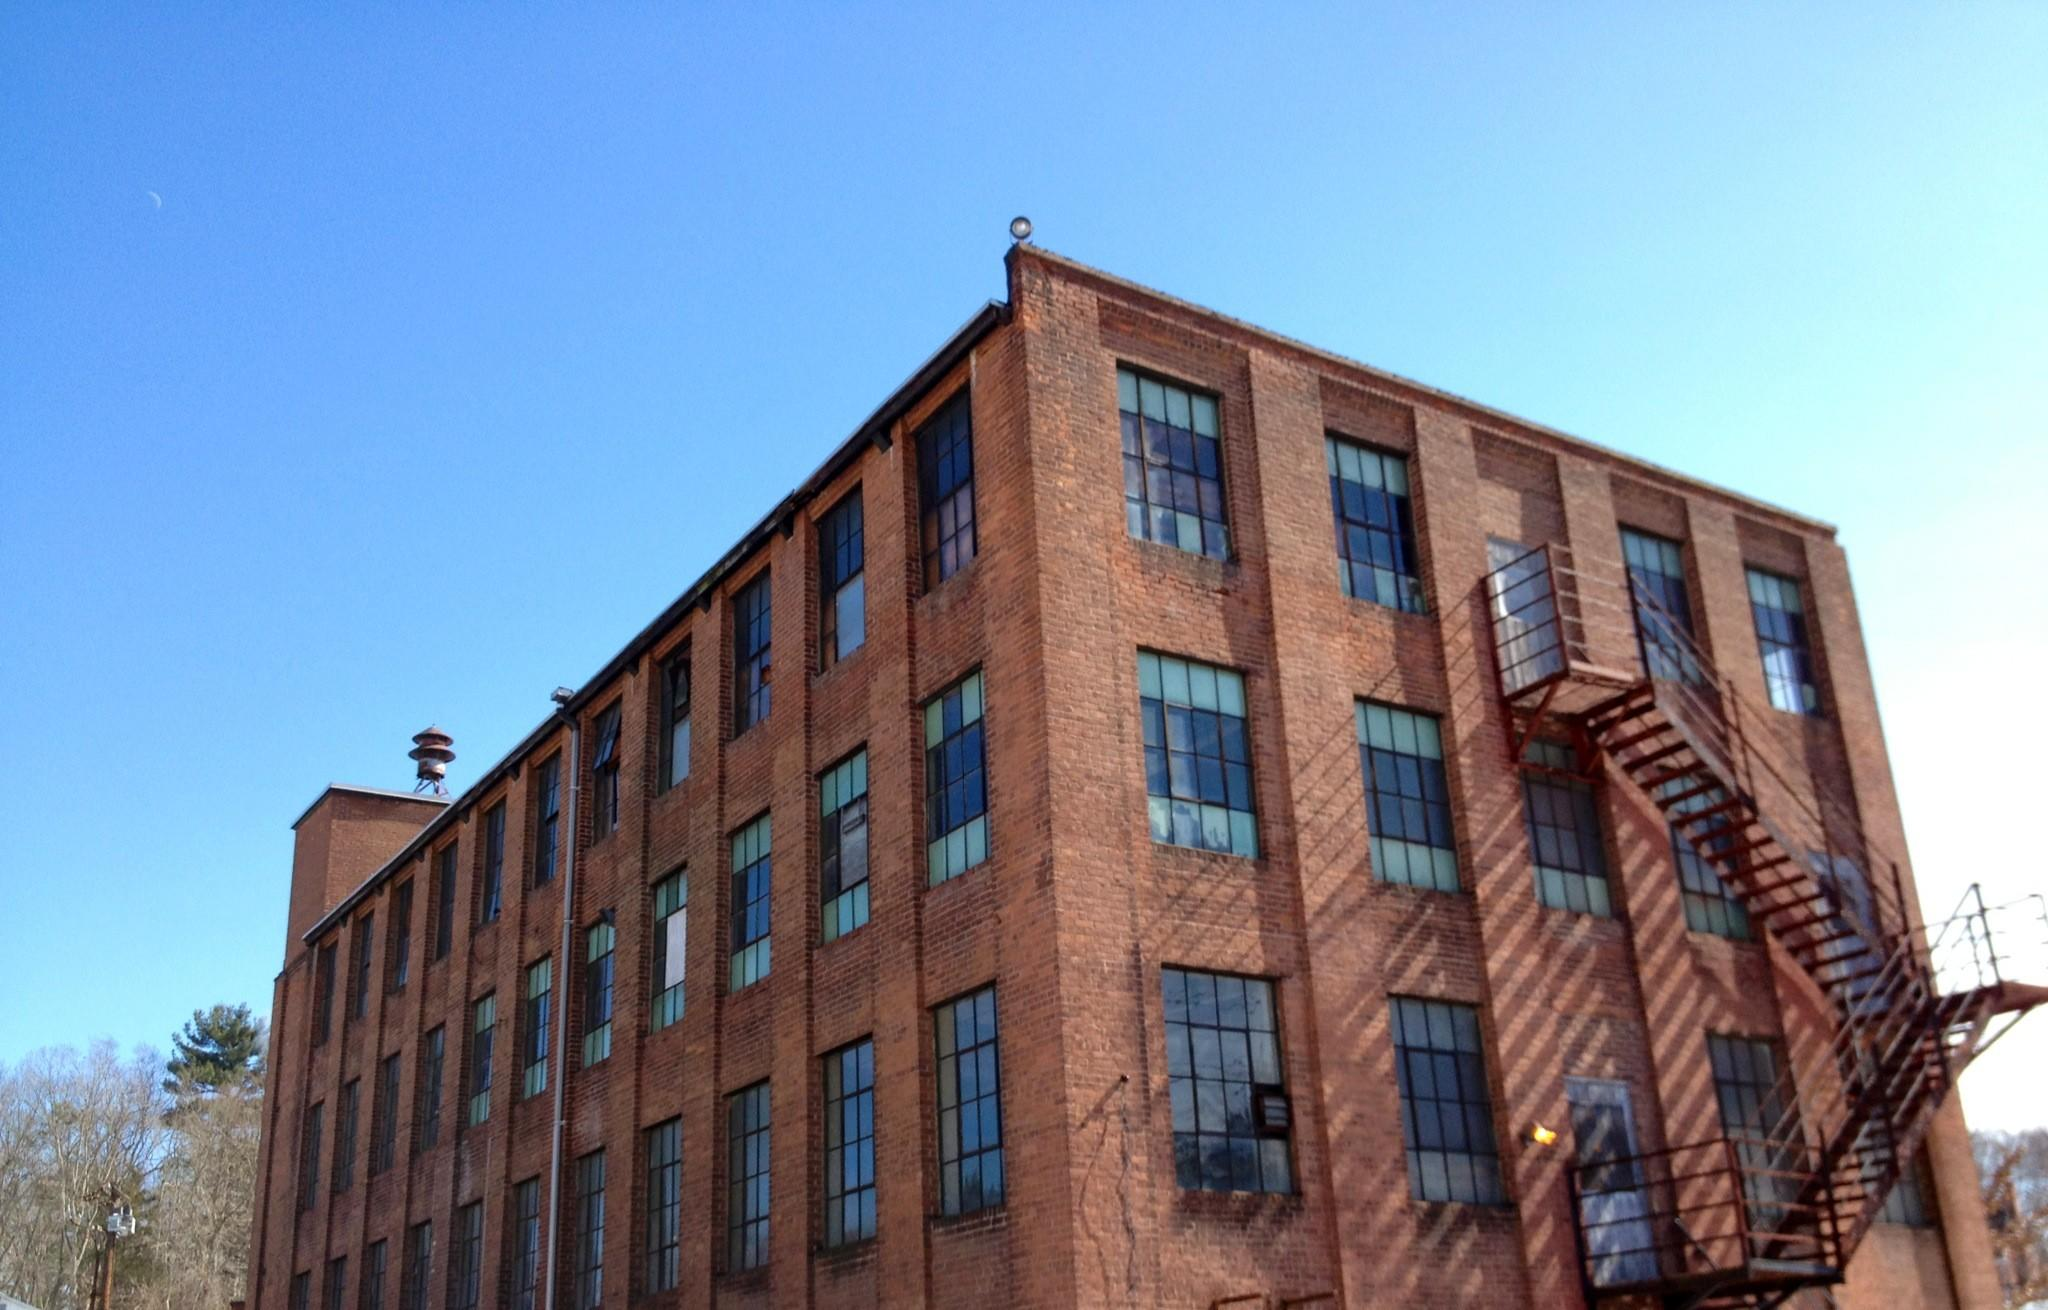 The old tannery building still exist along New London Turnpike.